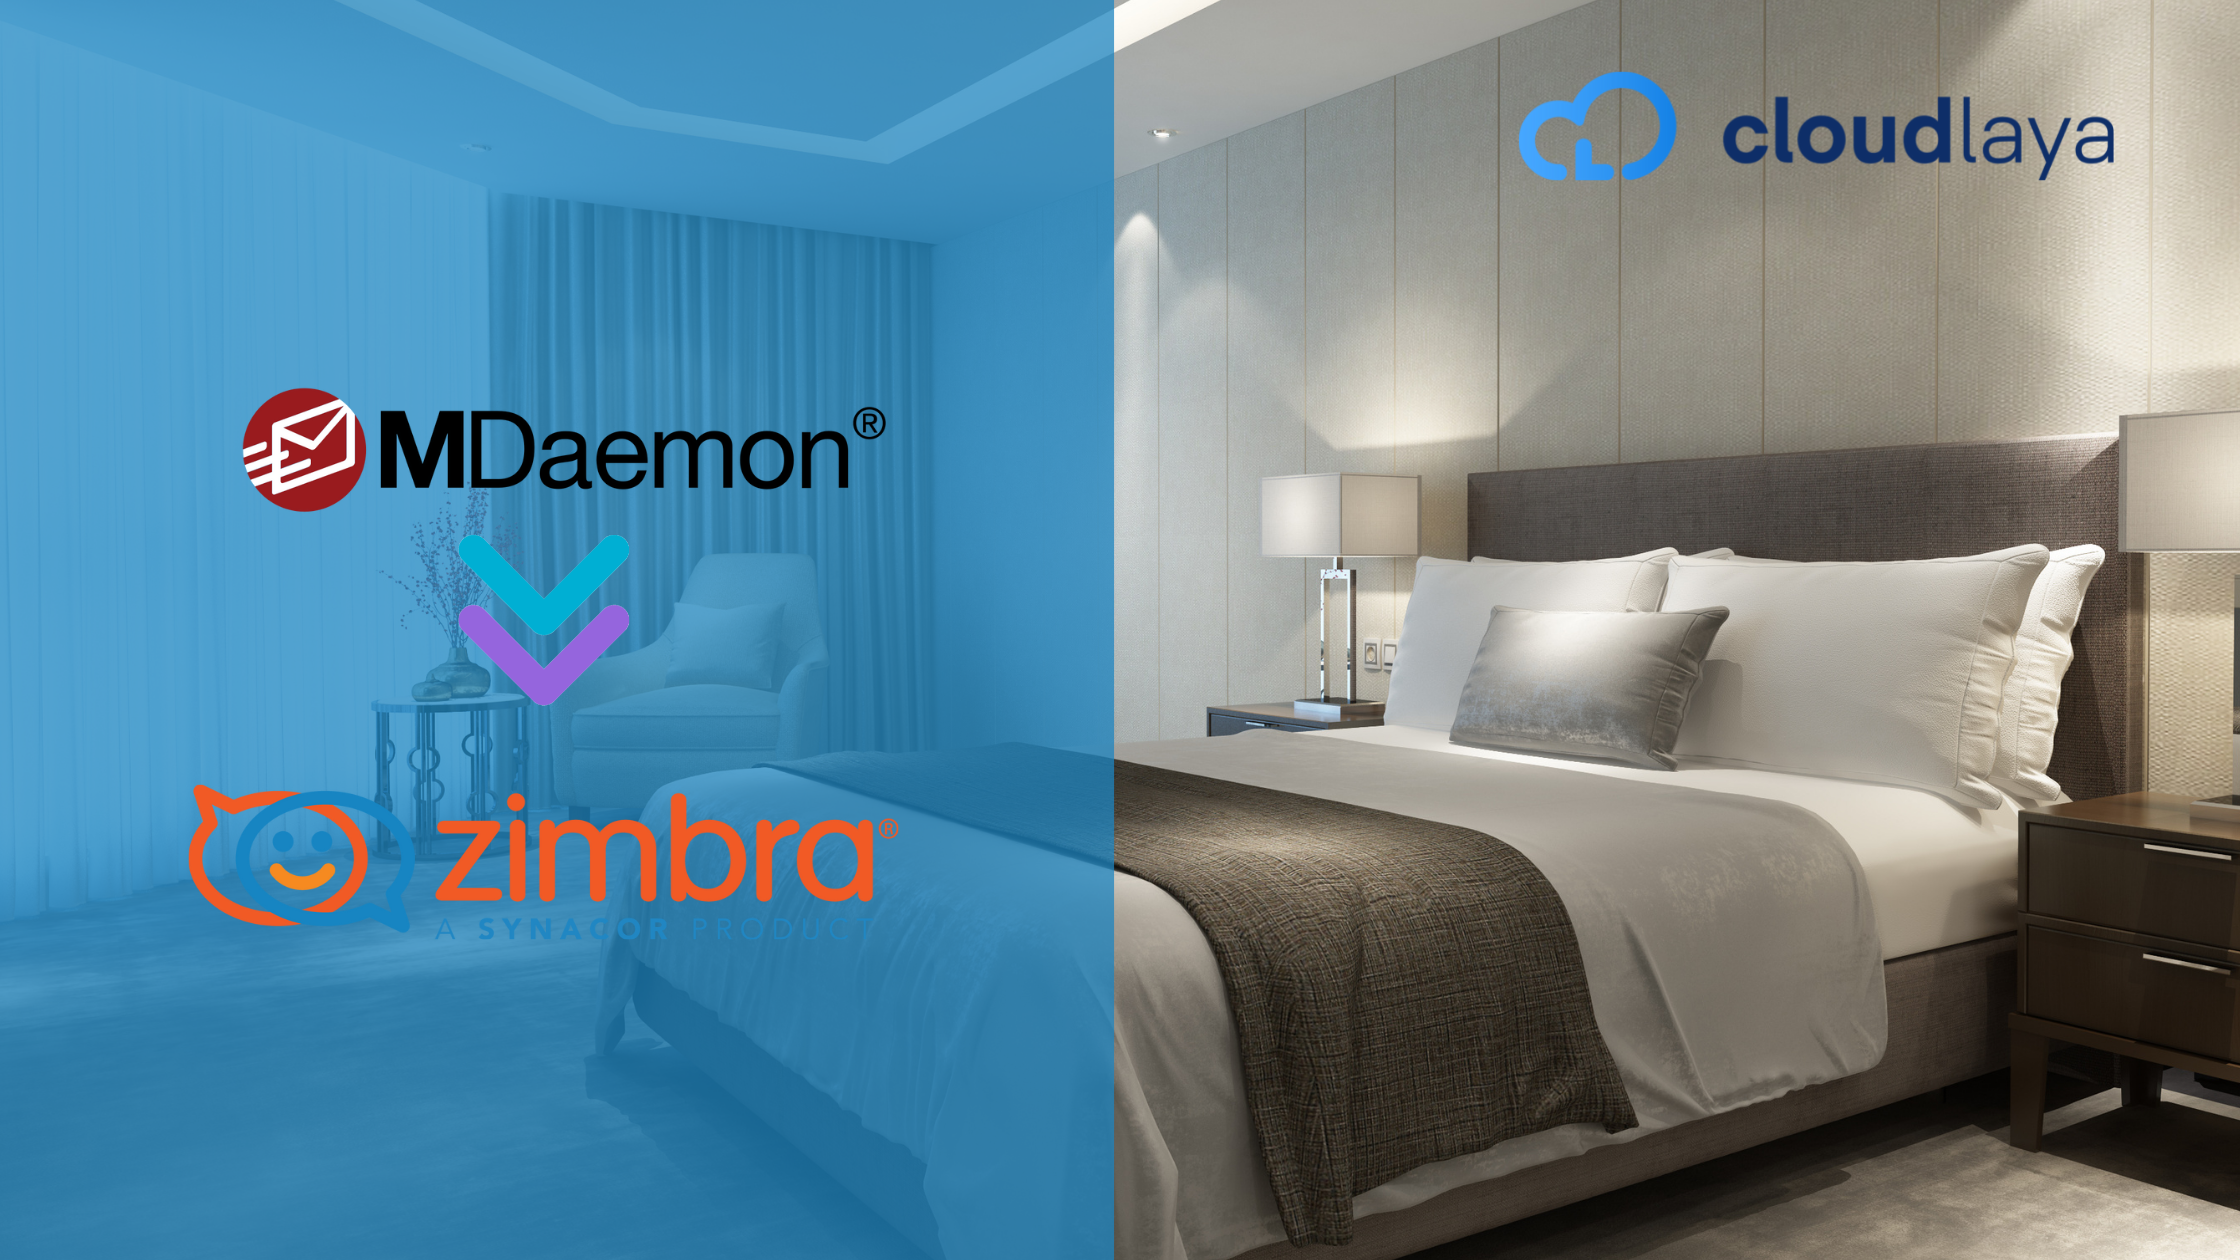 Email migration from MDaemon to Zimbra  for a 4-star Hotel